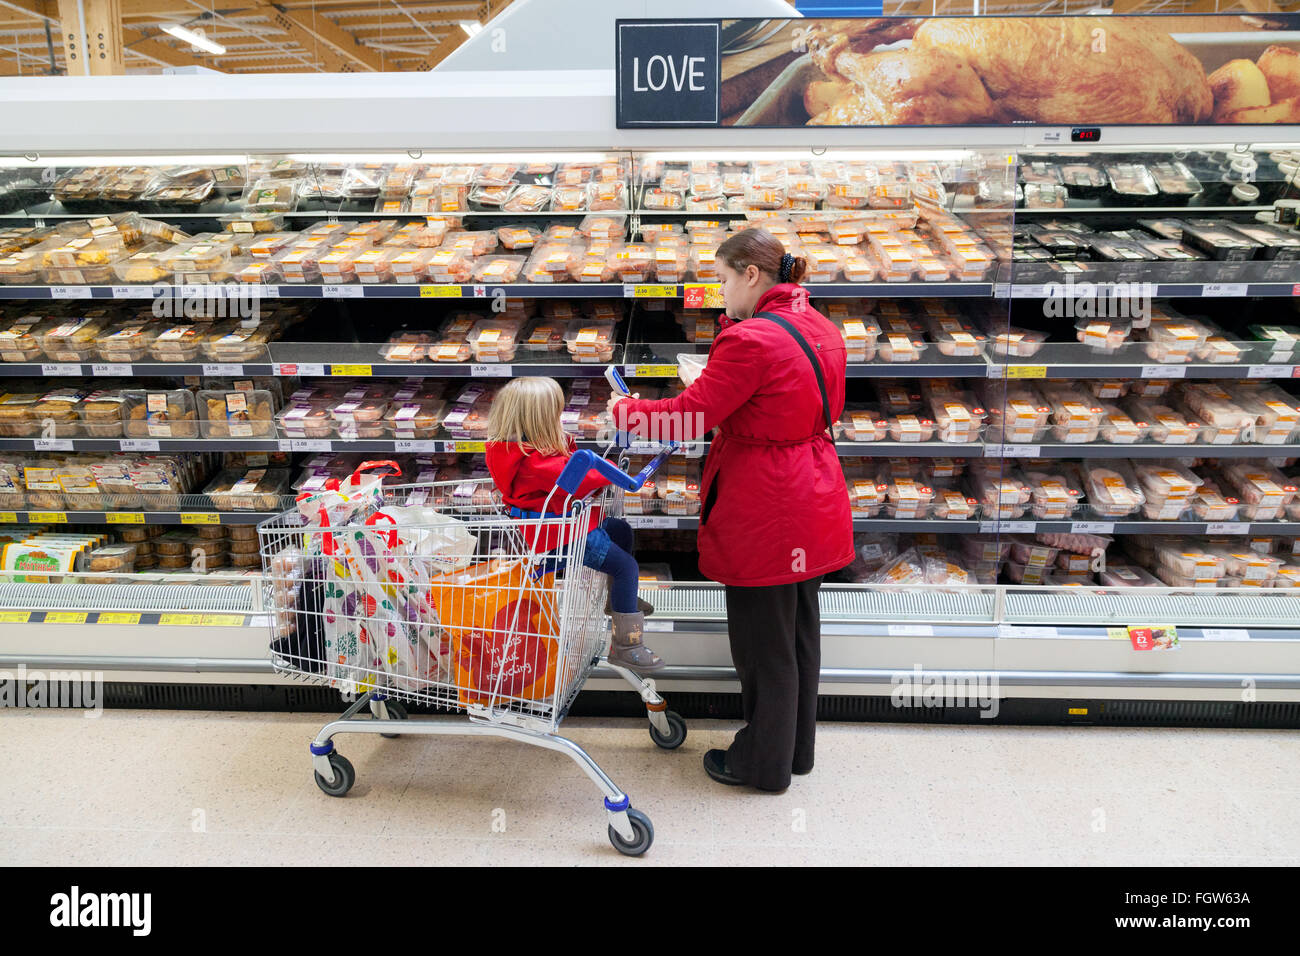 A mother with her child in a shopping trolley shopping in a supermarket, UK - Stock Image